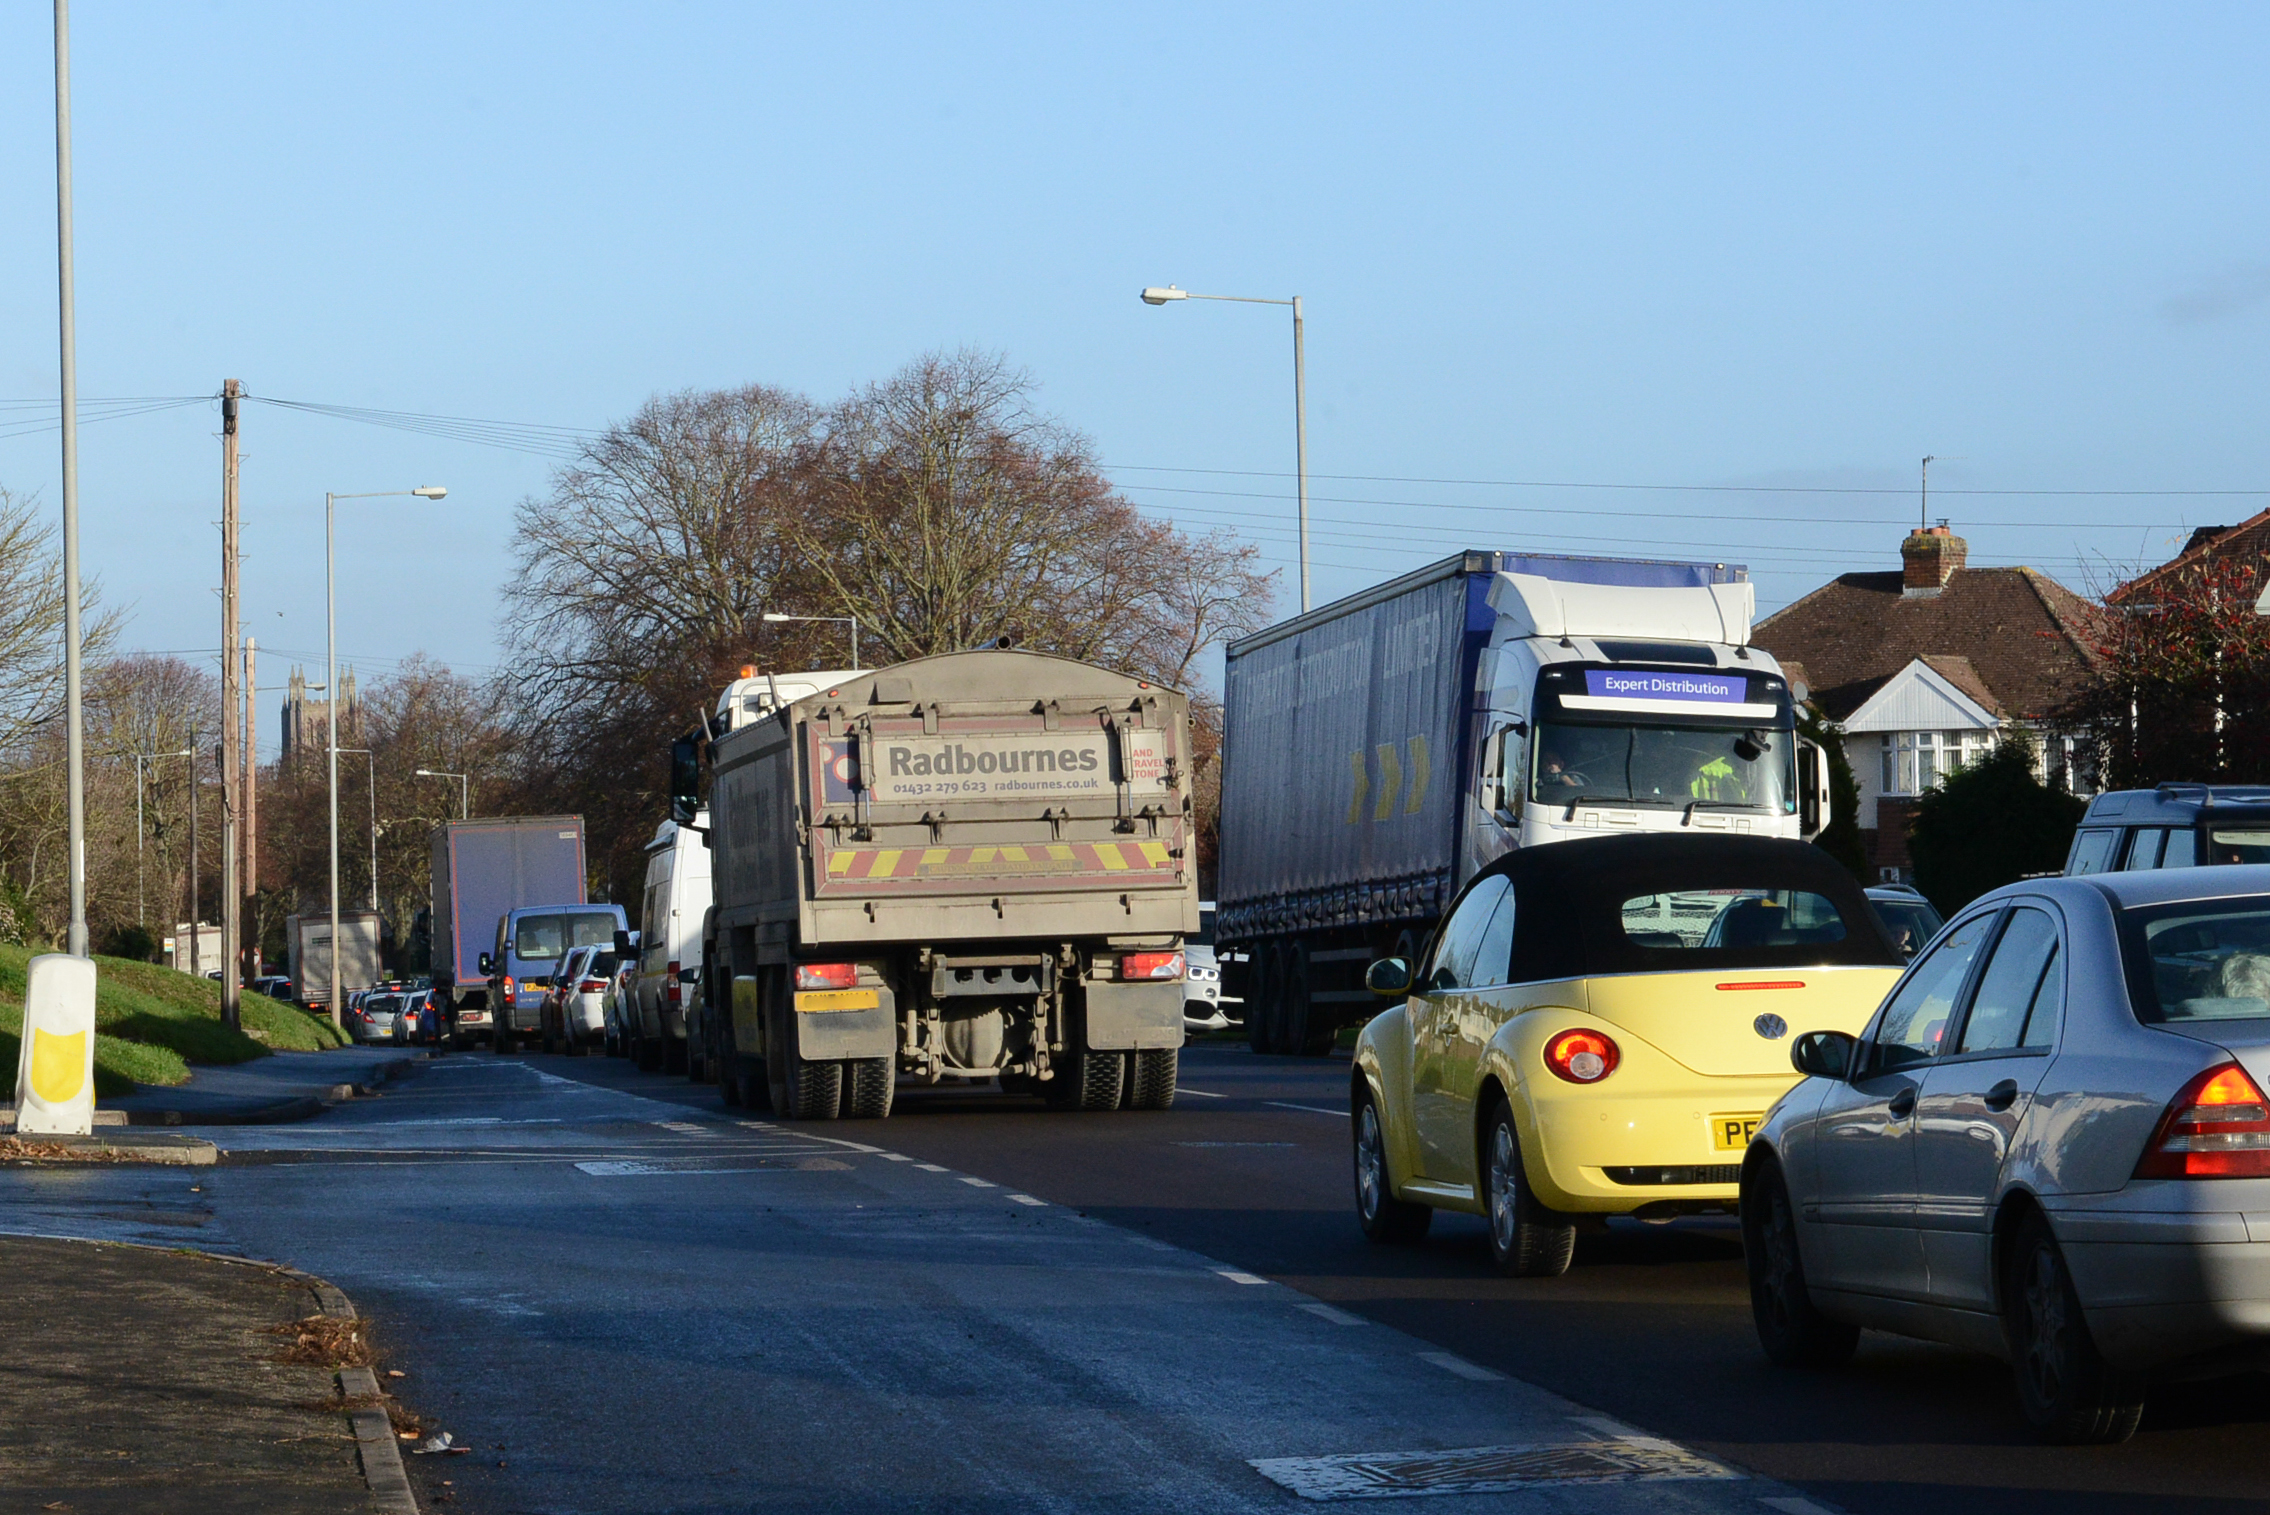 Traffic backs up on Ross Road in Hereford this morning as roadworks cause delays